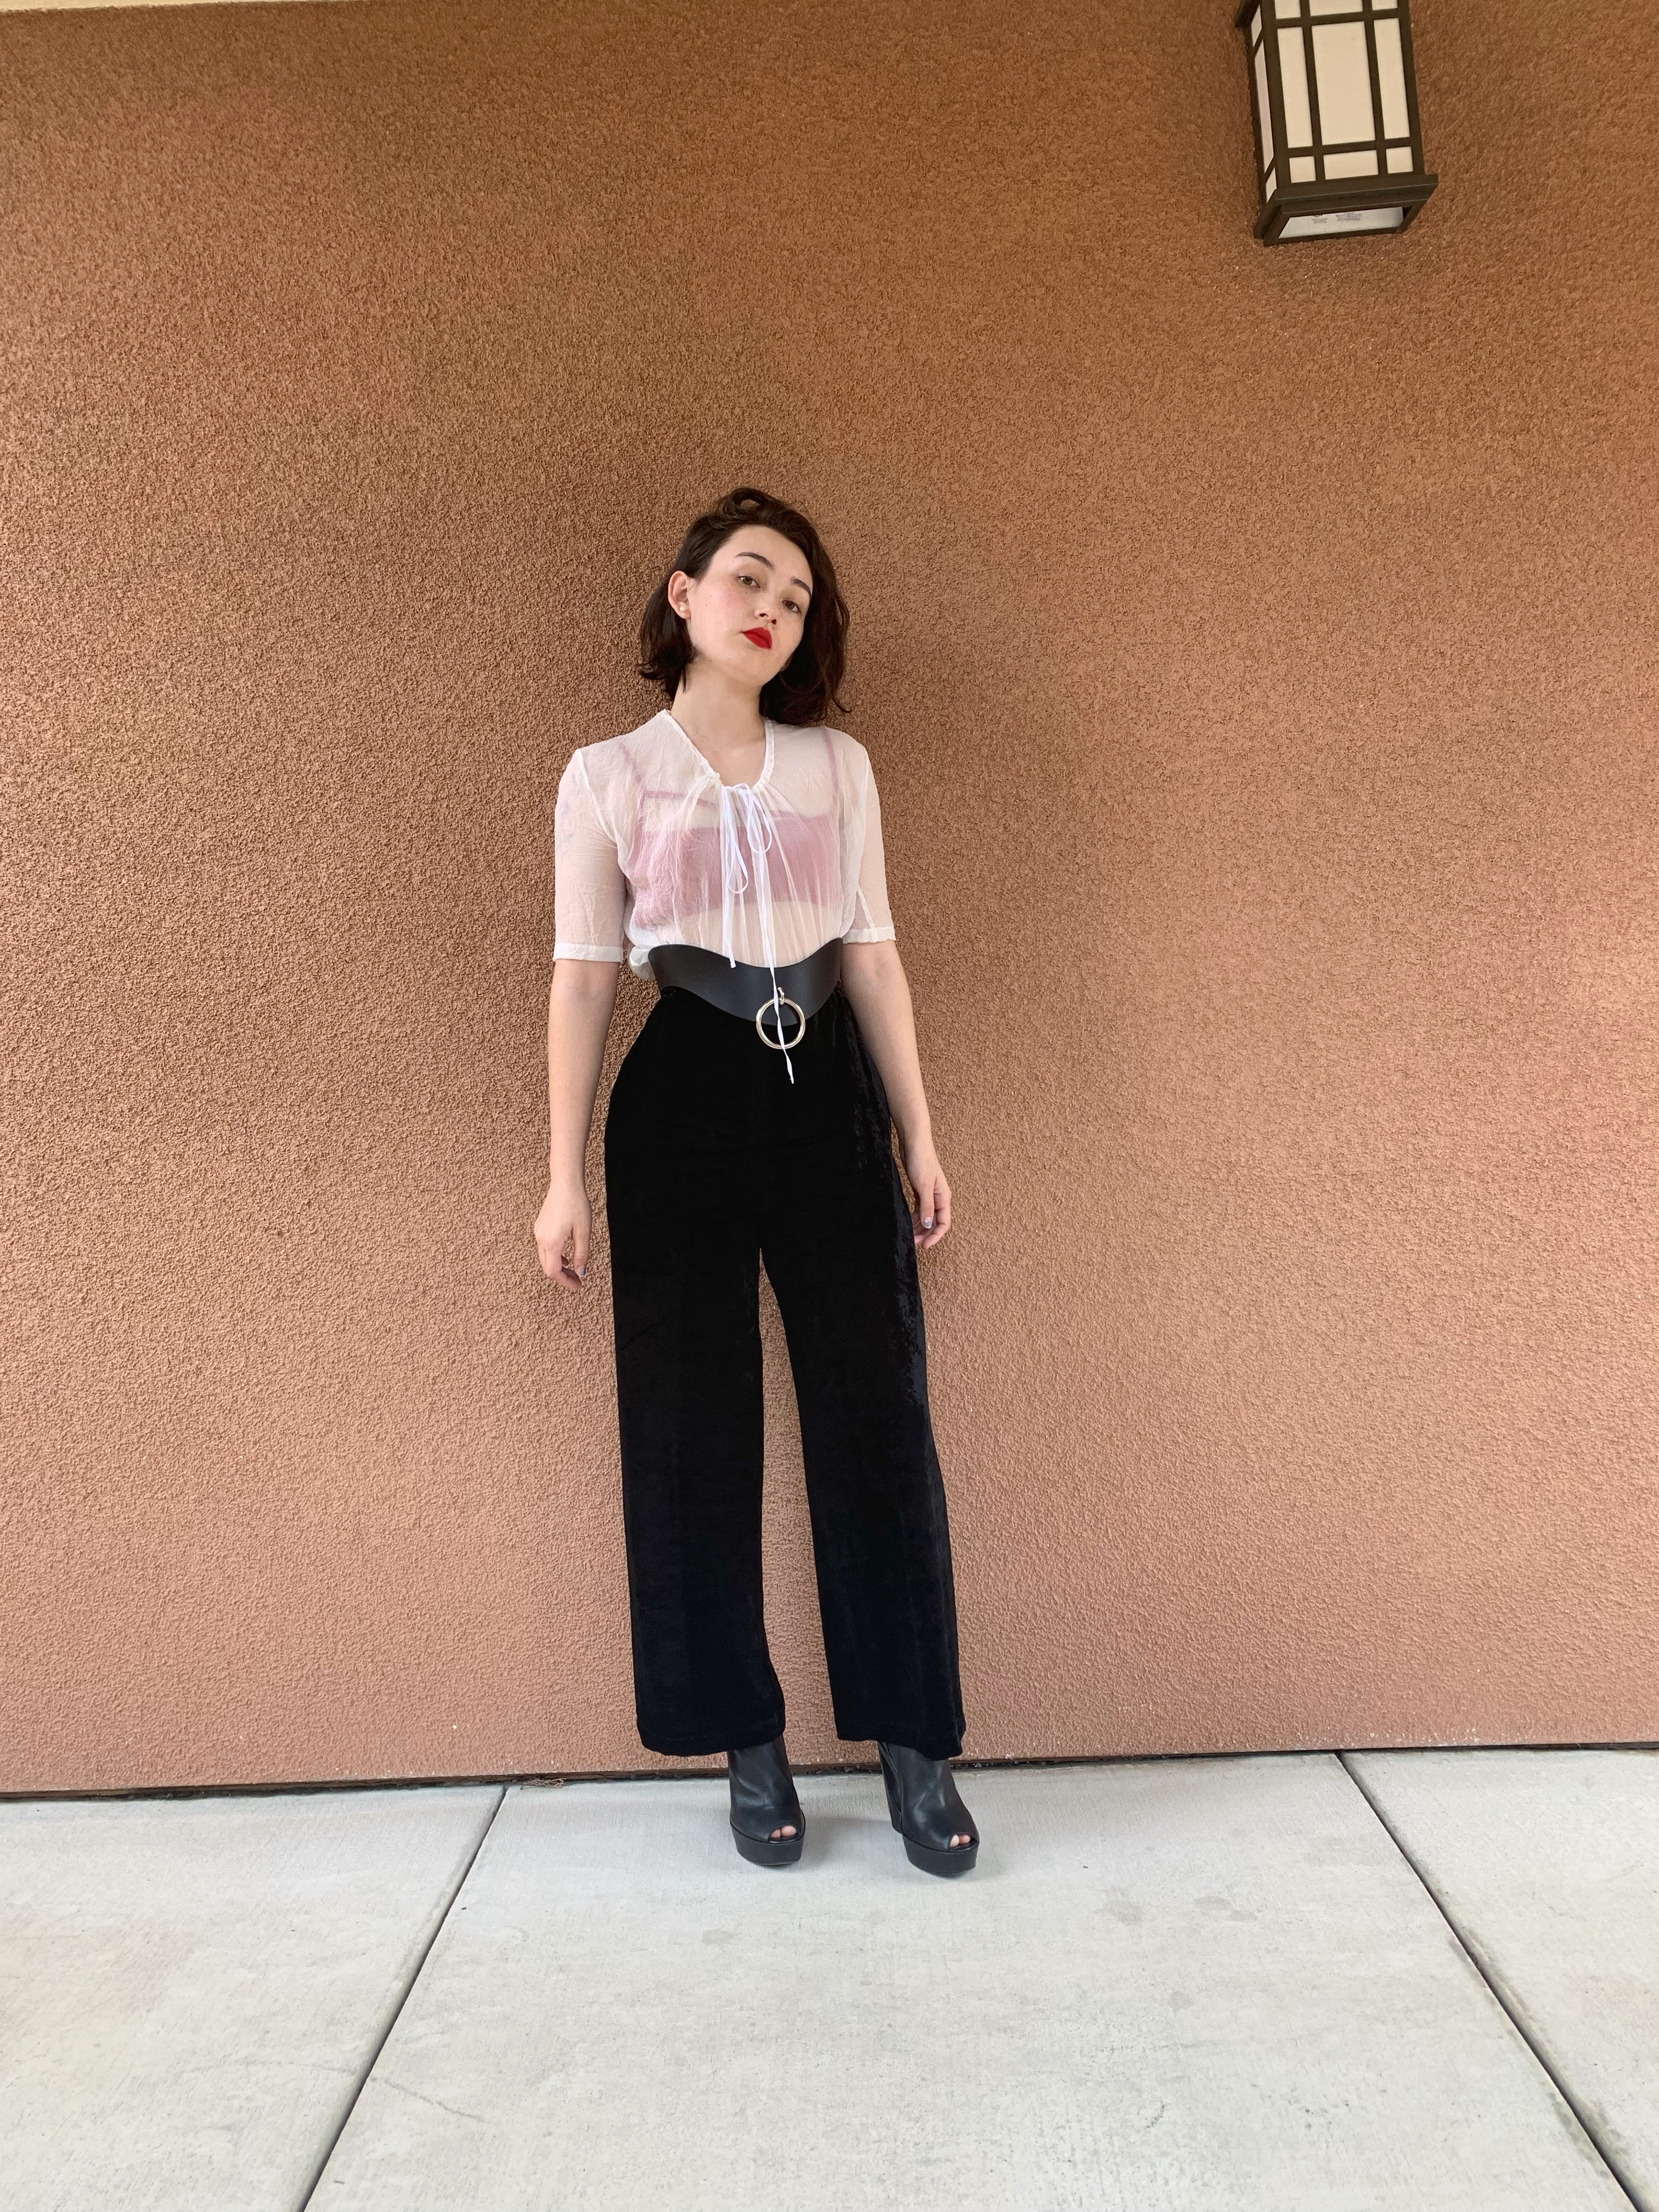 Lingerie As Outerwear: Isabel Kang Favourite Styles